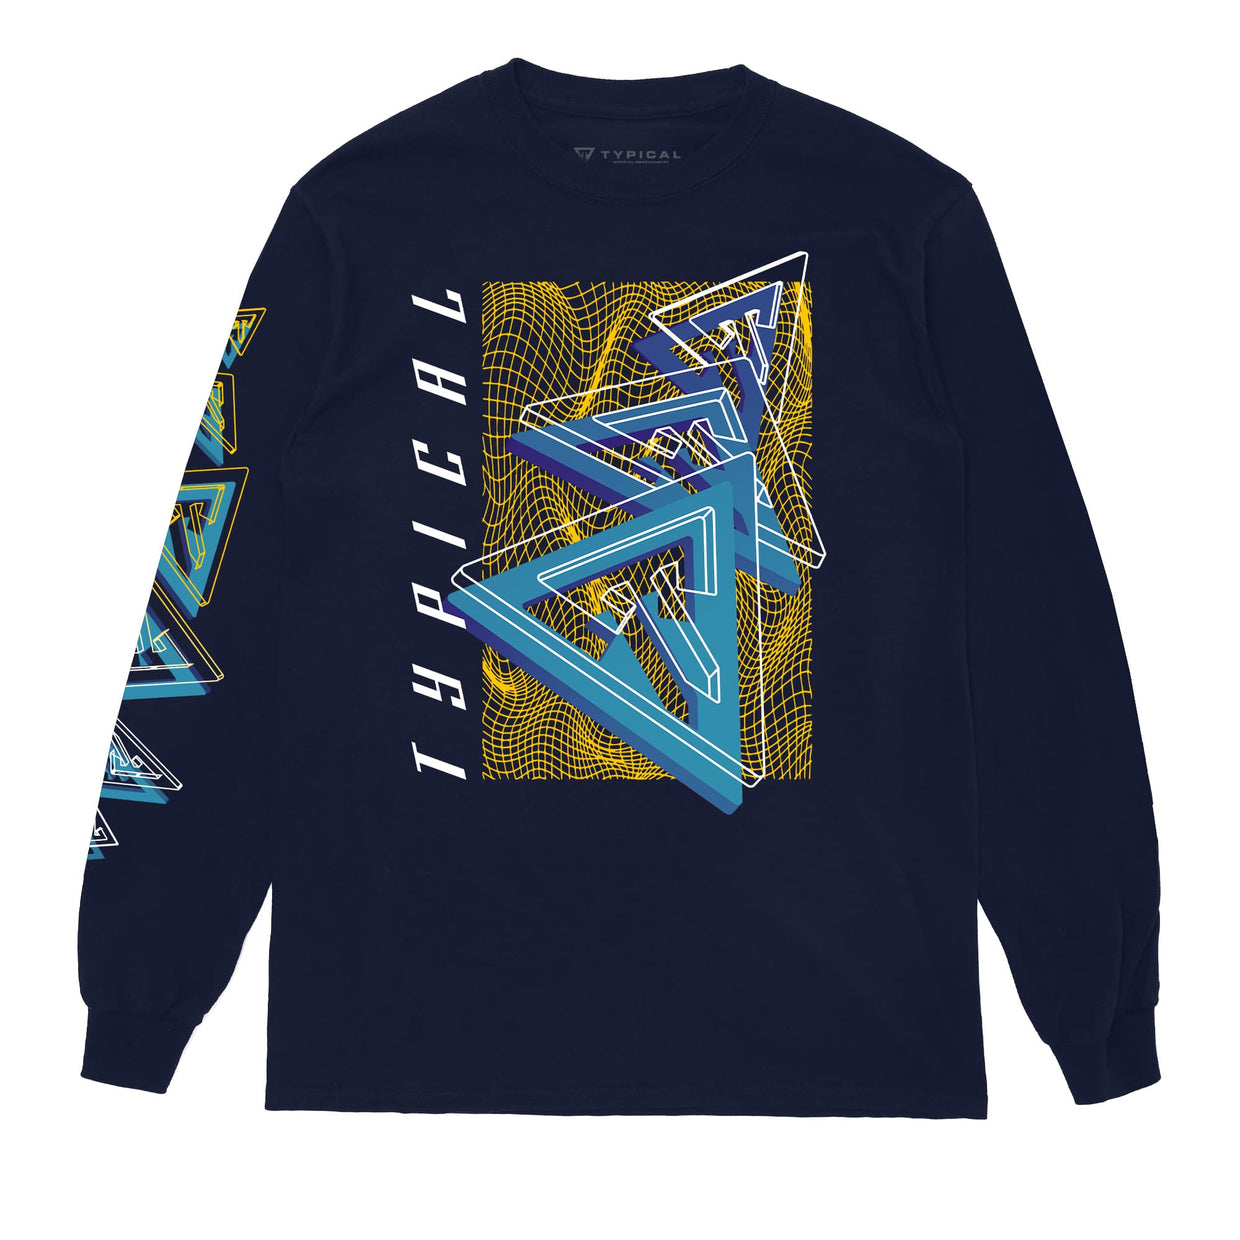 'Oscillation' Long Sleeve Tee